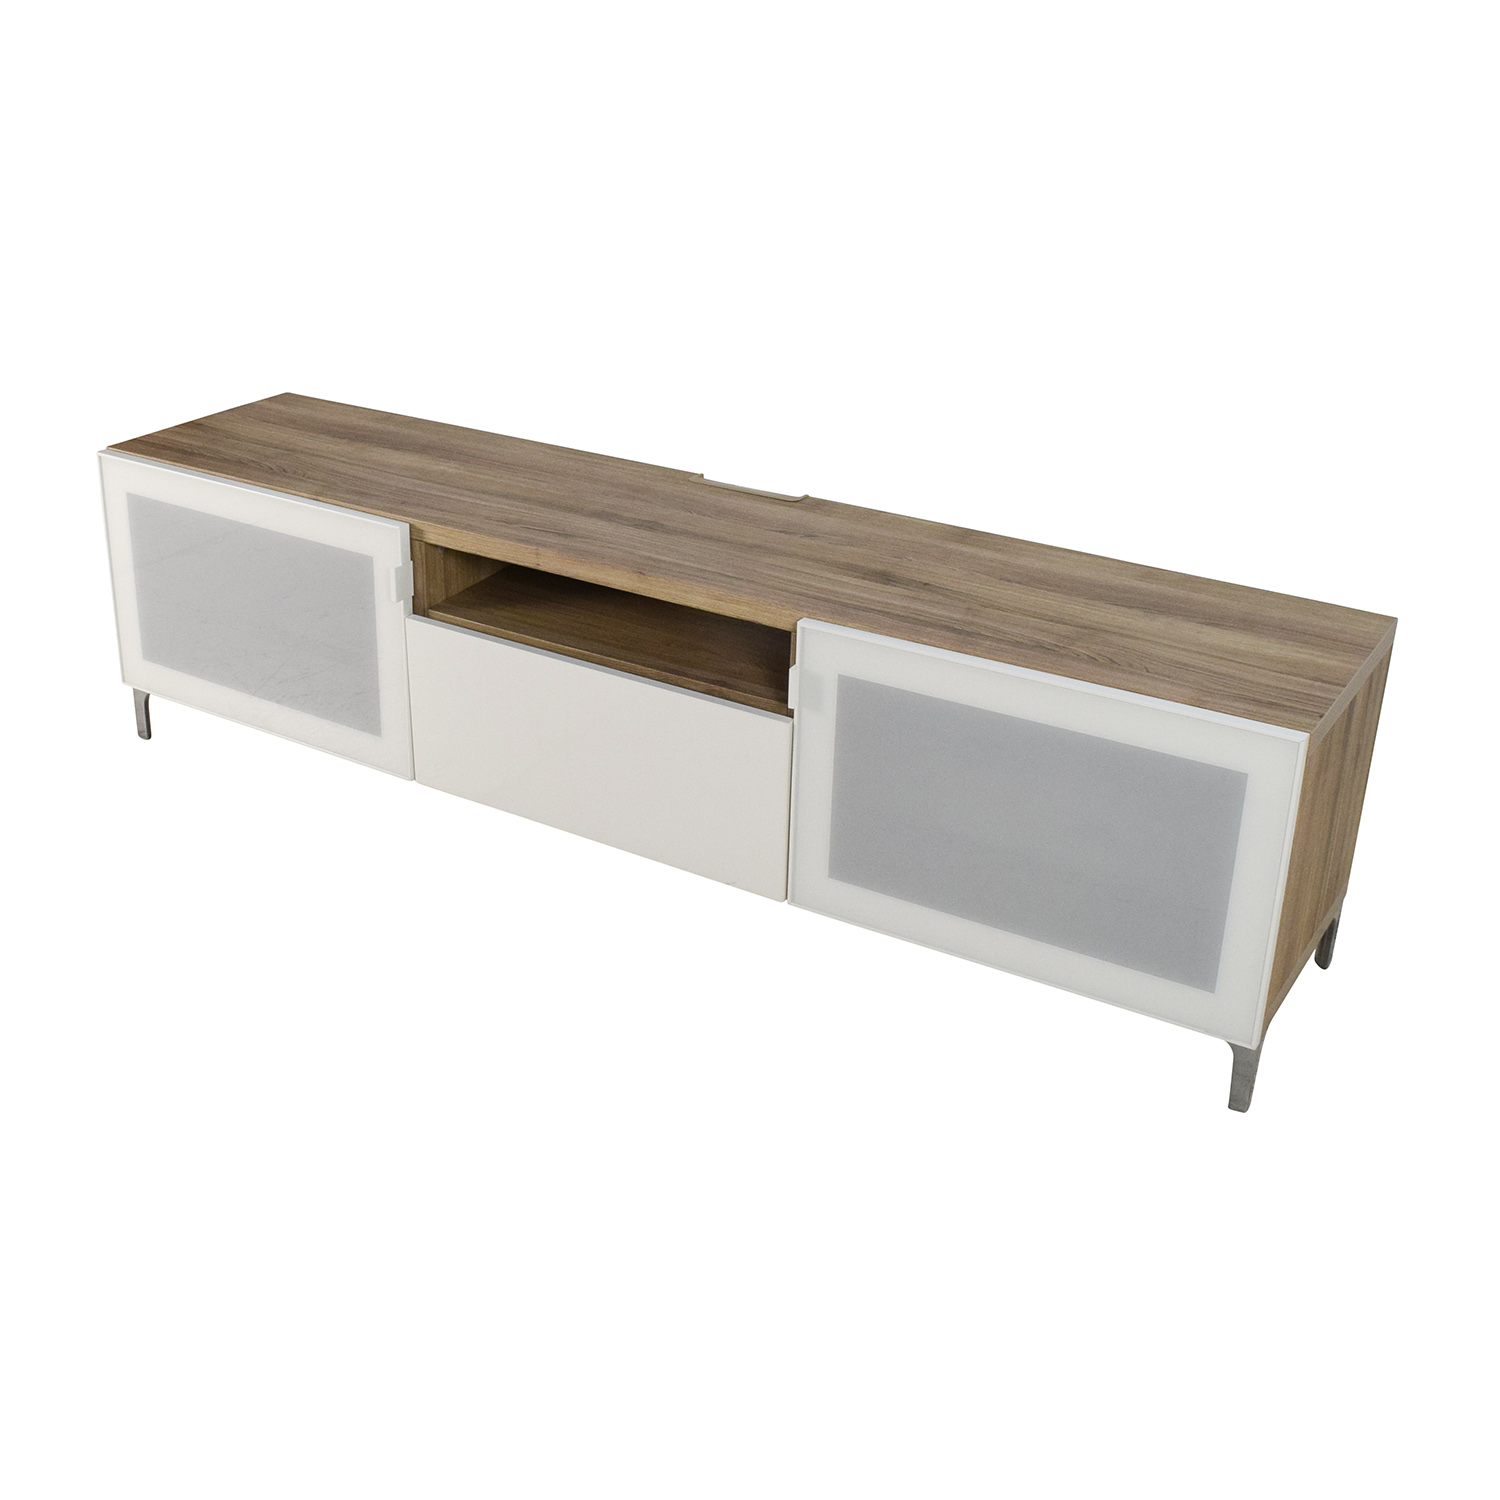 free today media south inch city mounted shipping life home product garden wall overstock bench console shore